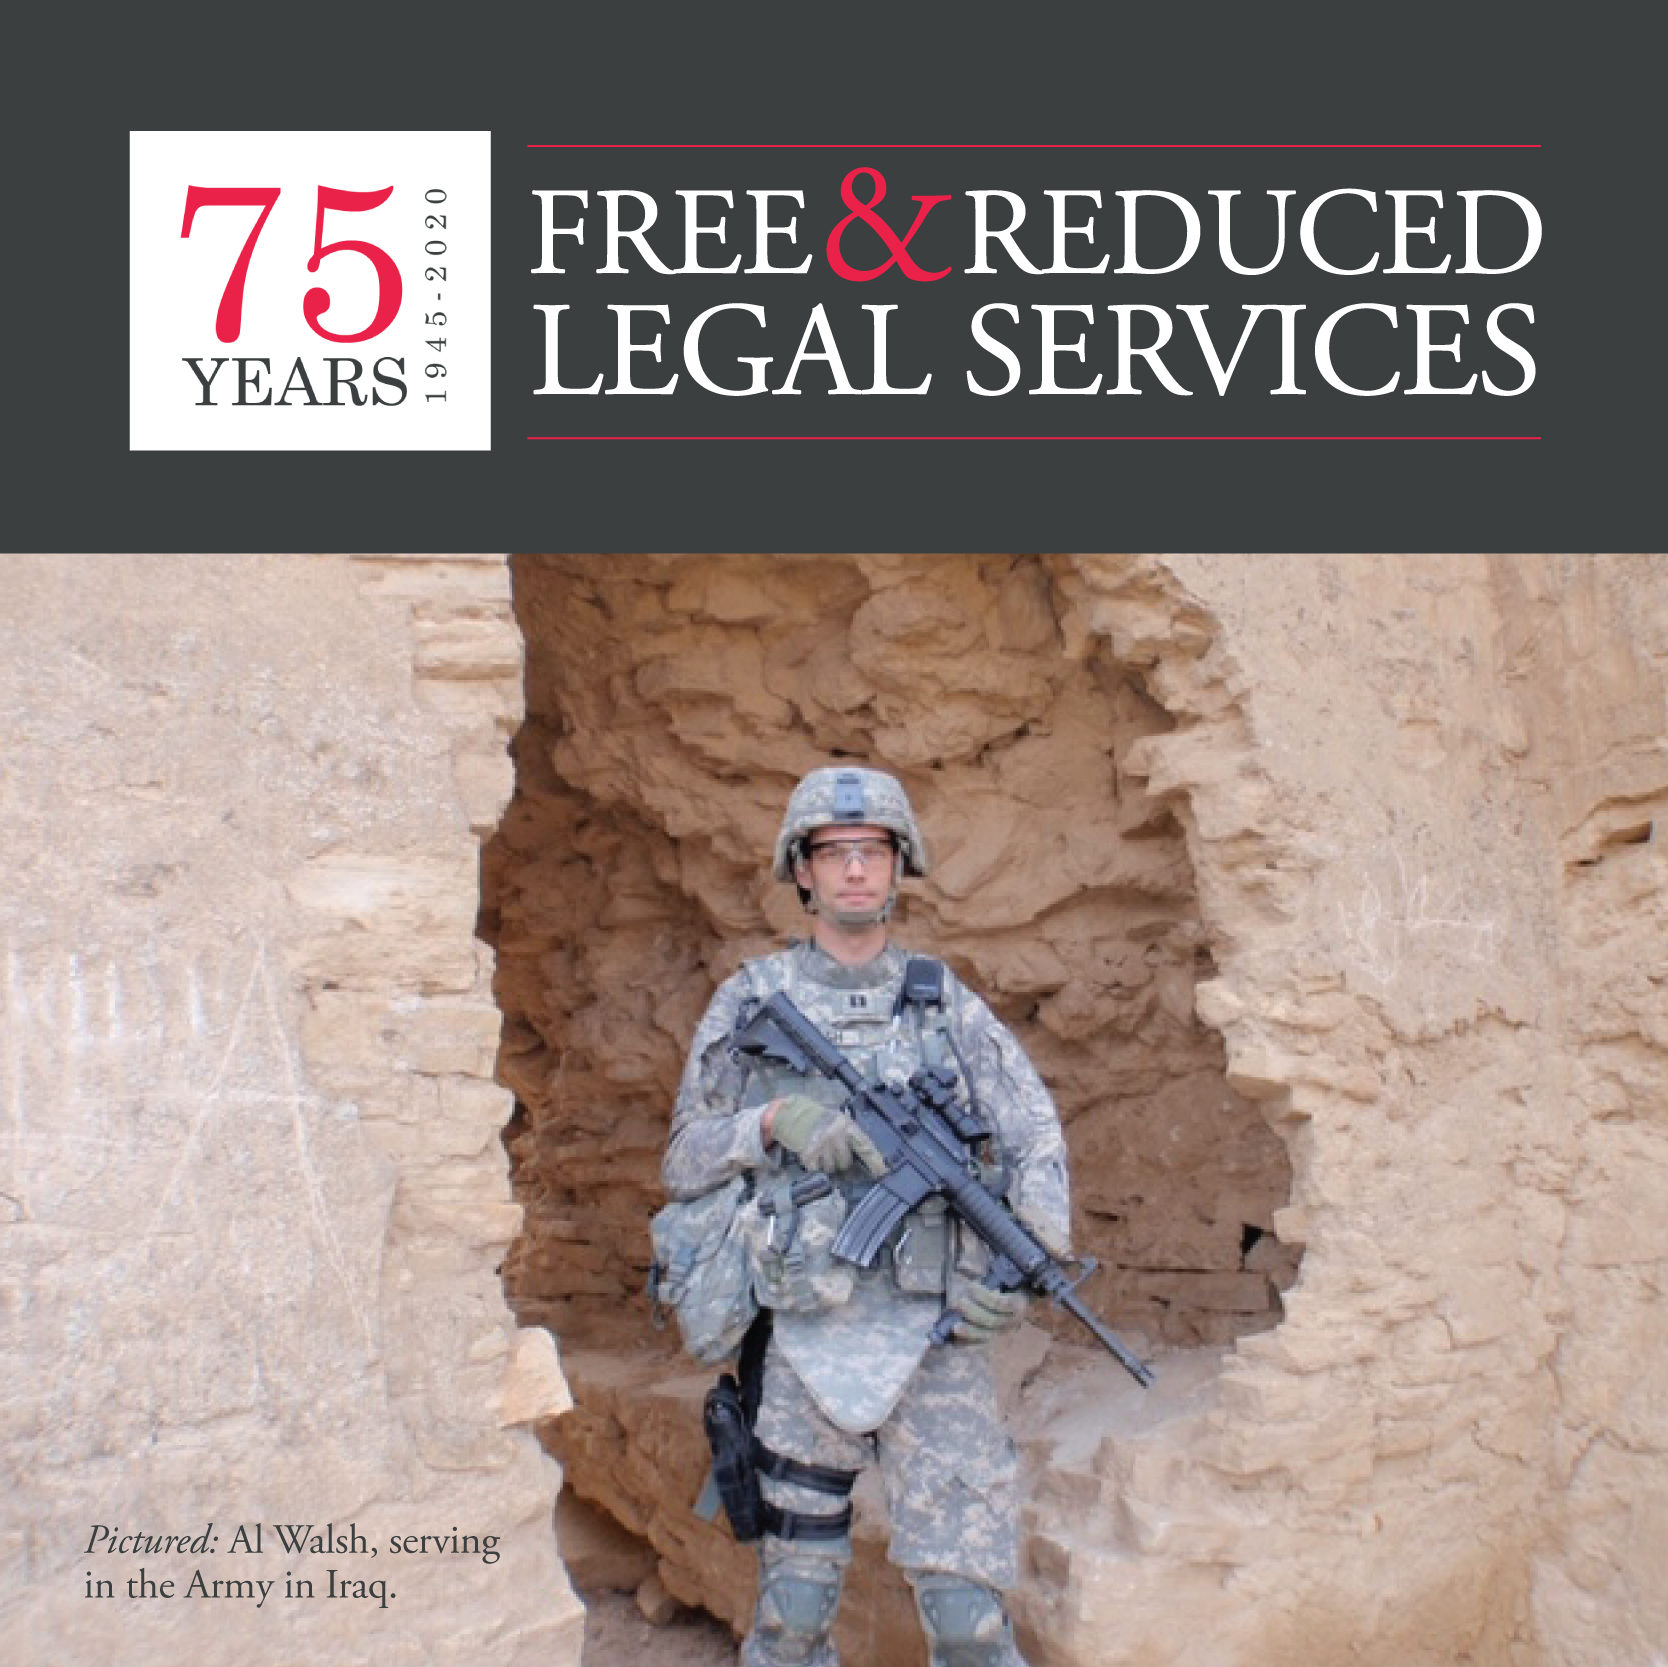 75 Years of Free & Reduced Legal Services: Al Walsh